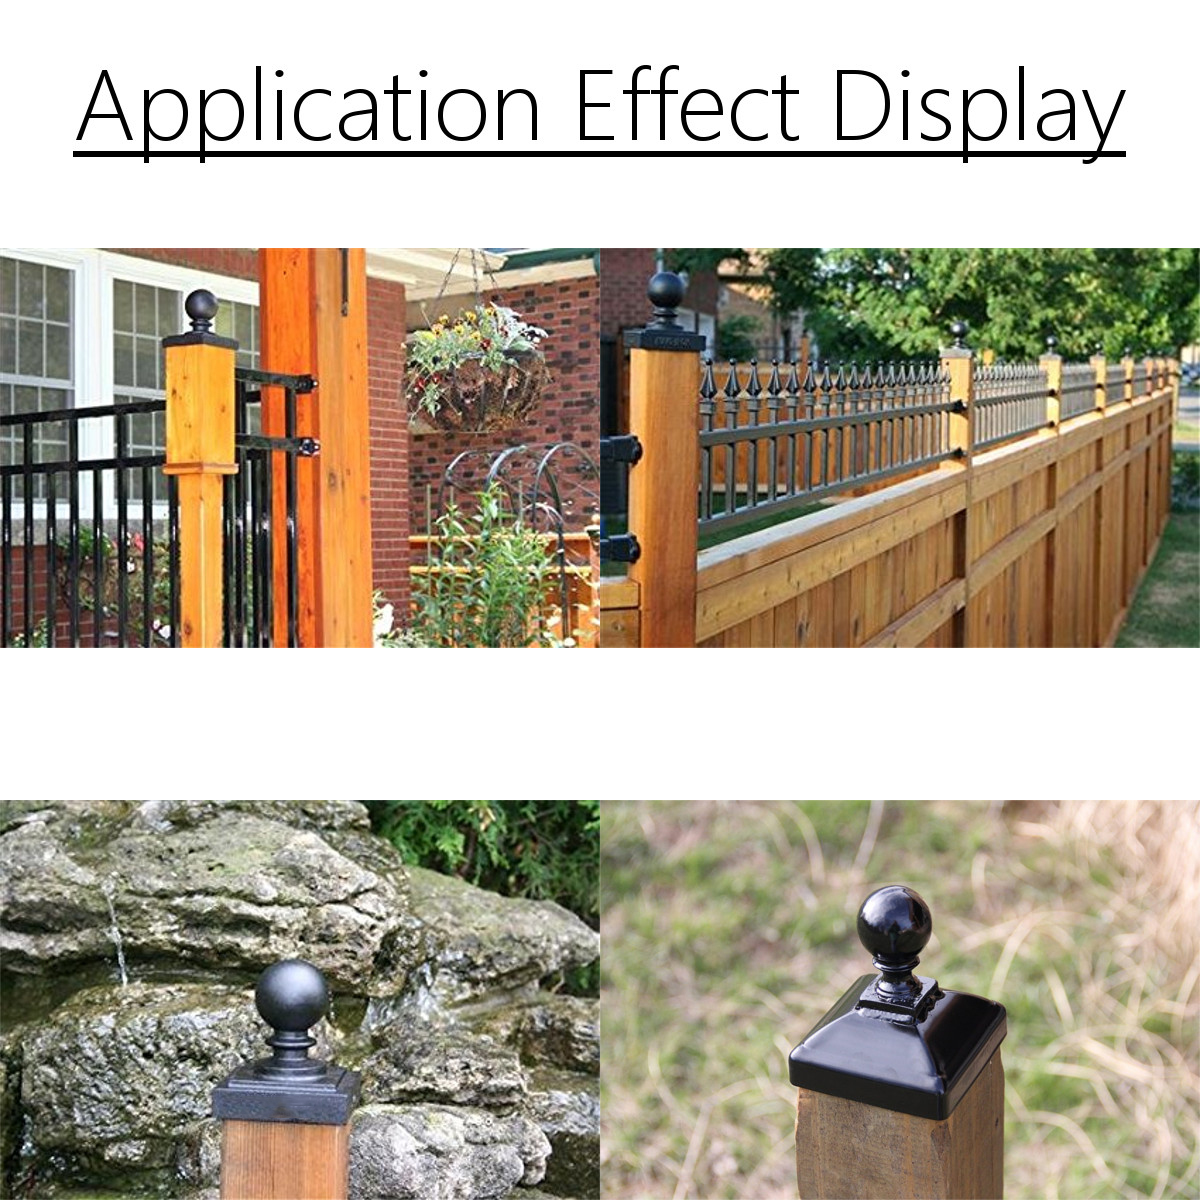 100mm Iron Ball Top Fence Finial Post Cap with Flat Square Base Decor Protection